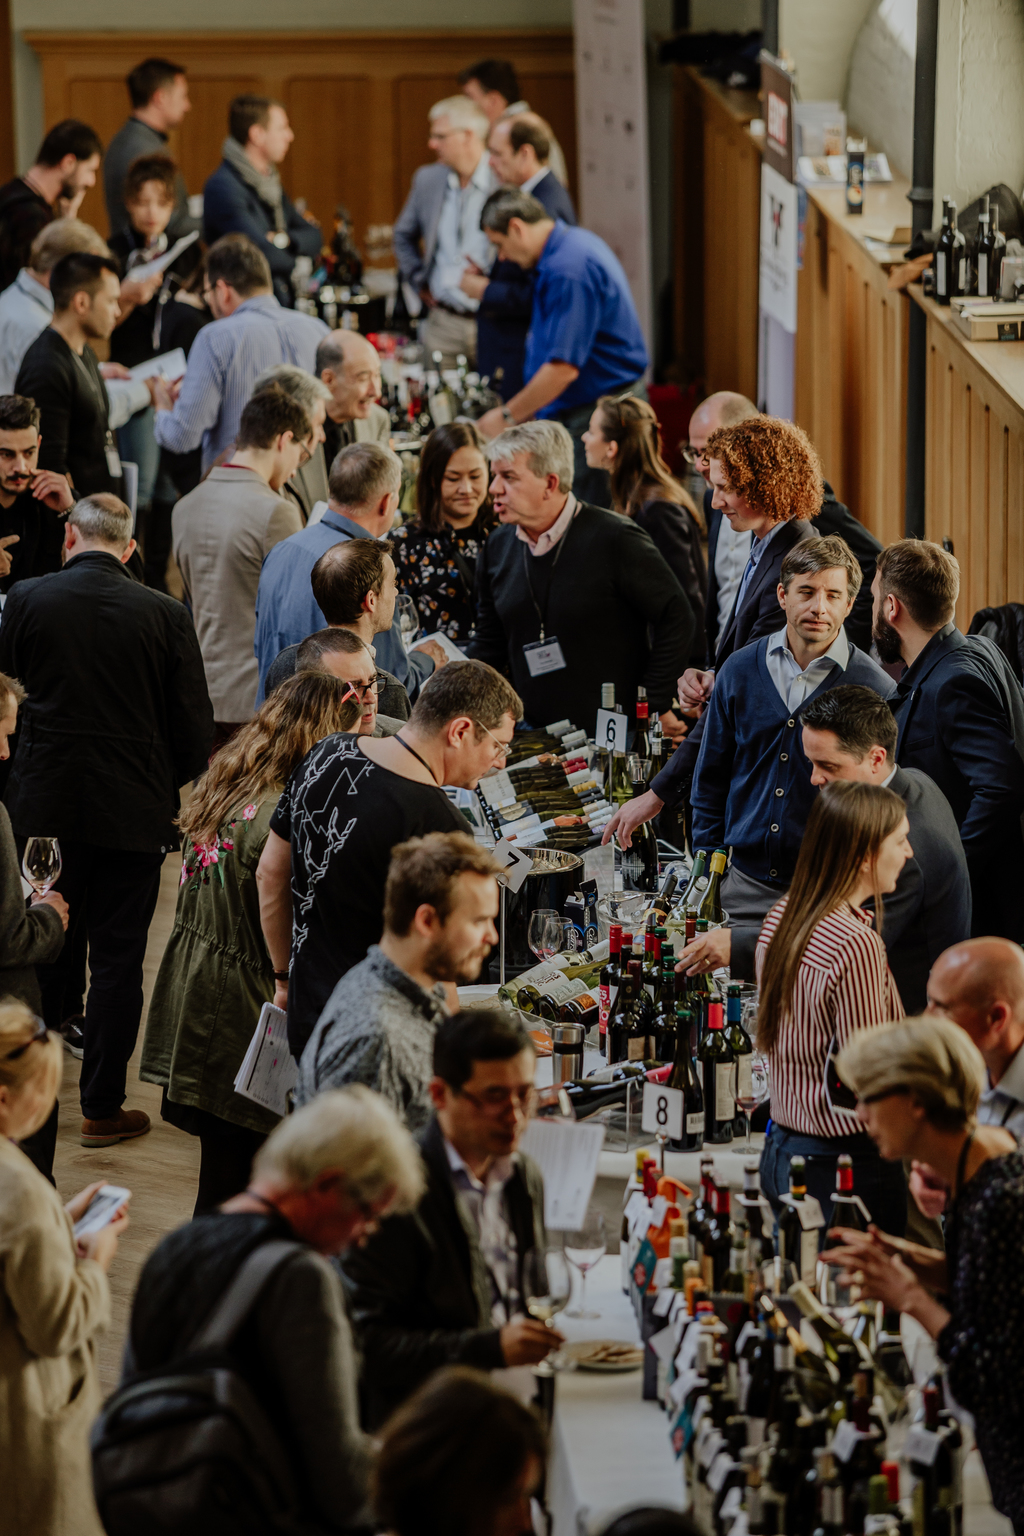 Harpers Wine Stars at trade events